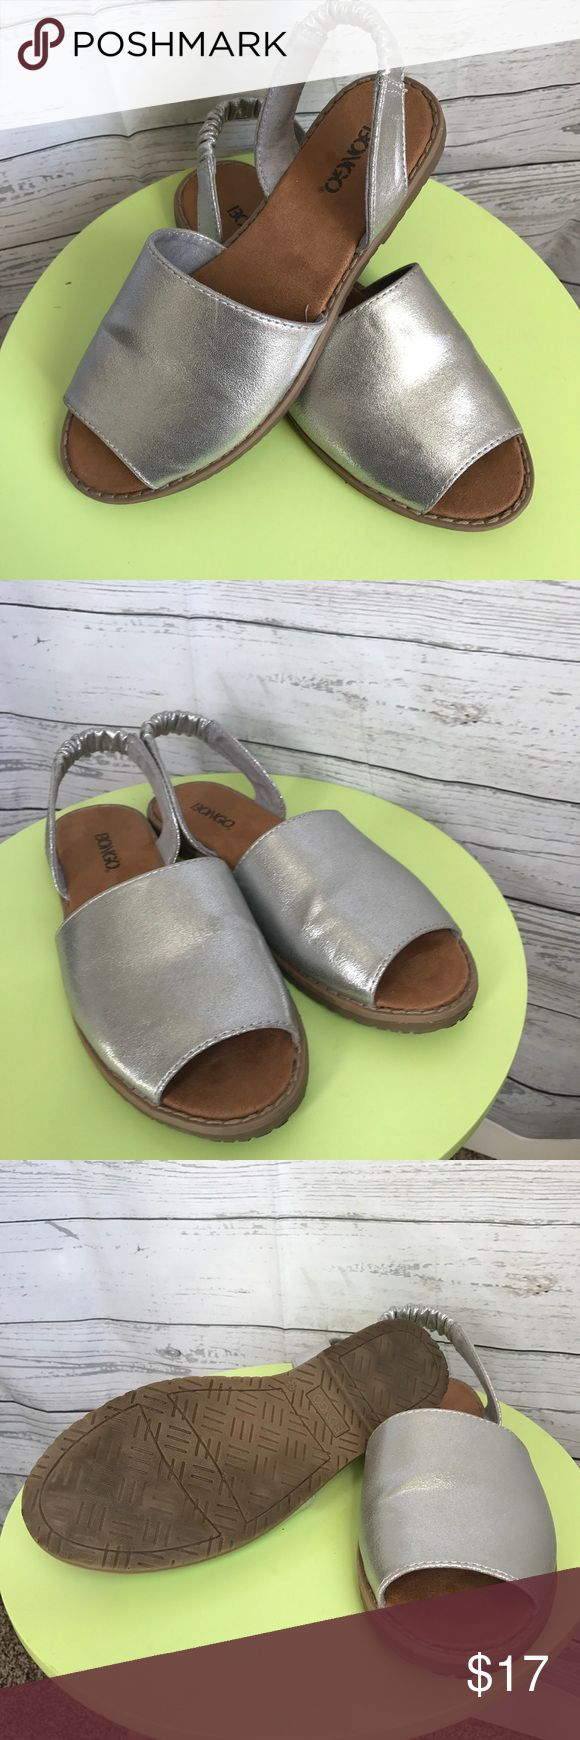 Bongo Slingback Sandals Silver Bongo slingback Sandals in great condition. BONGO Shoes Sandals